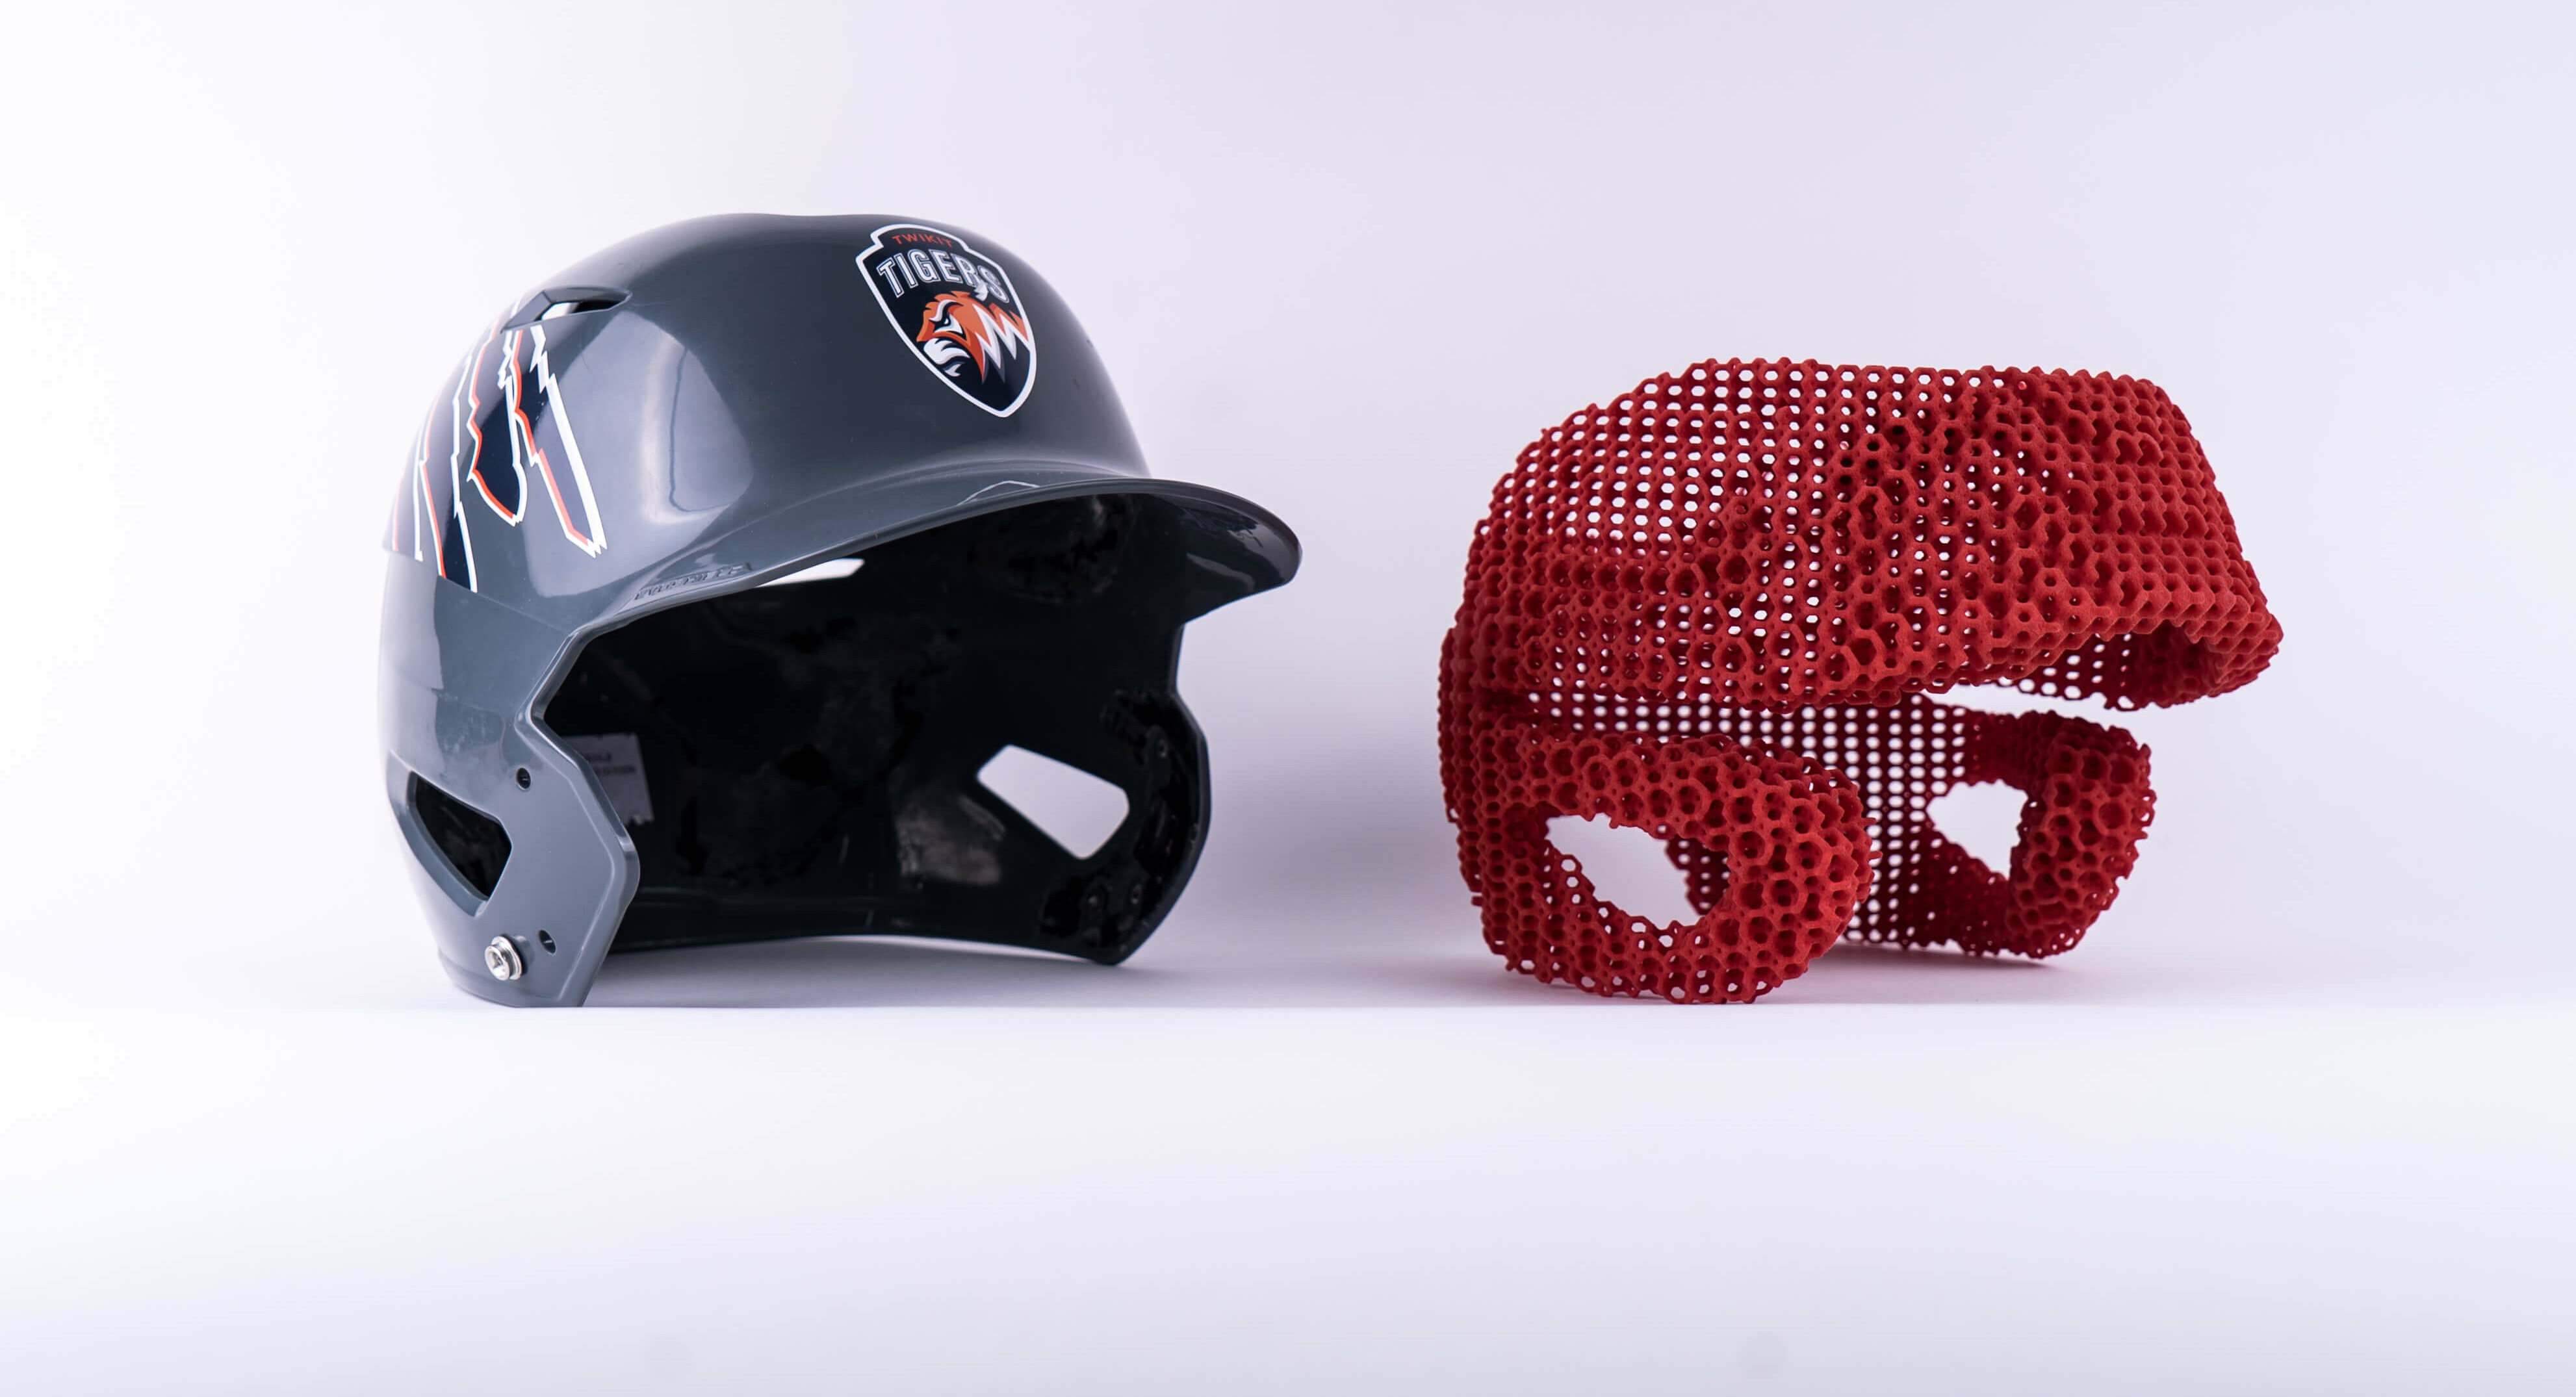 3D-printed sports helmet